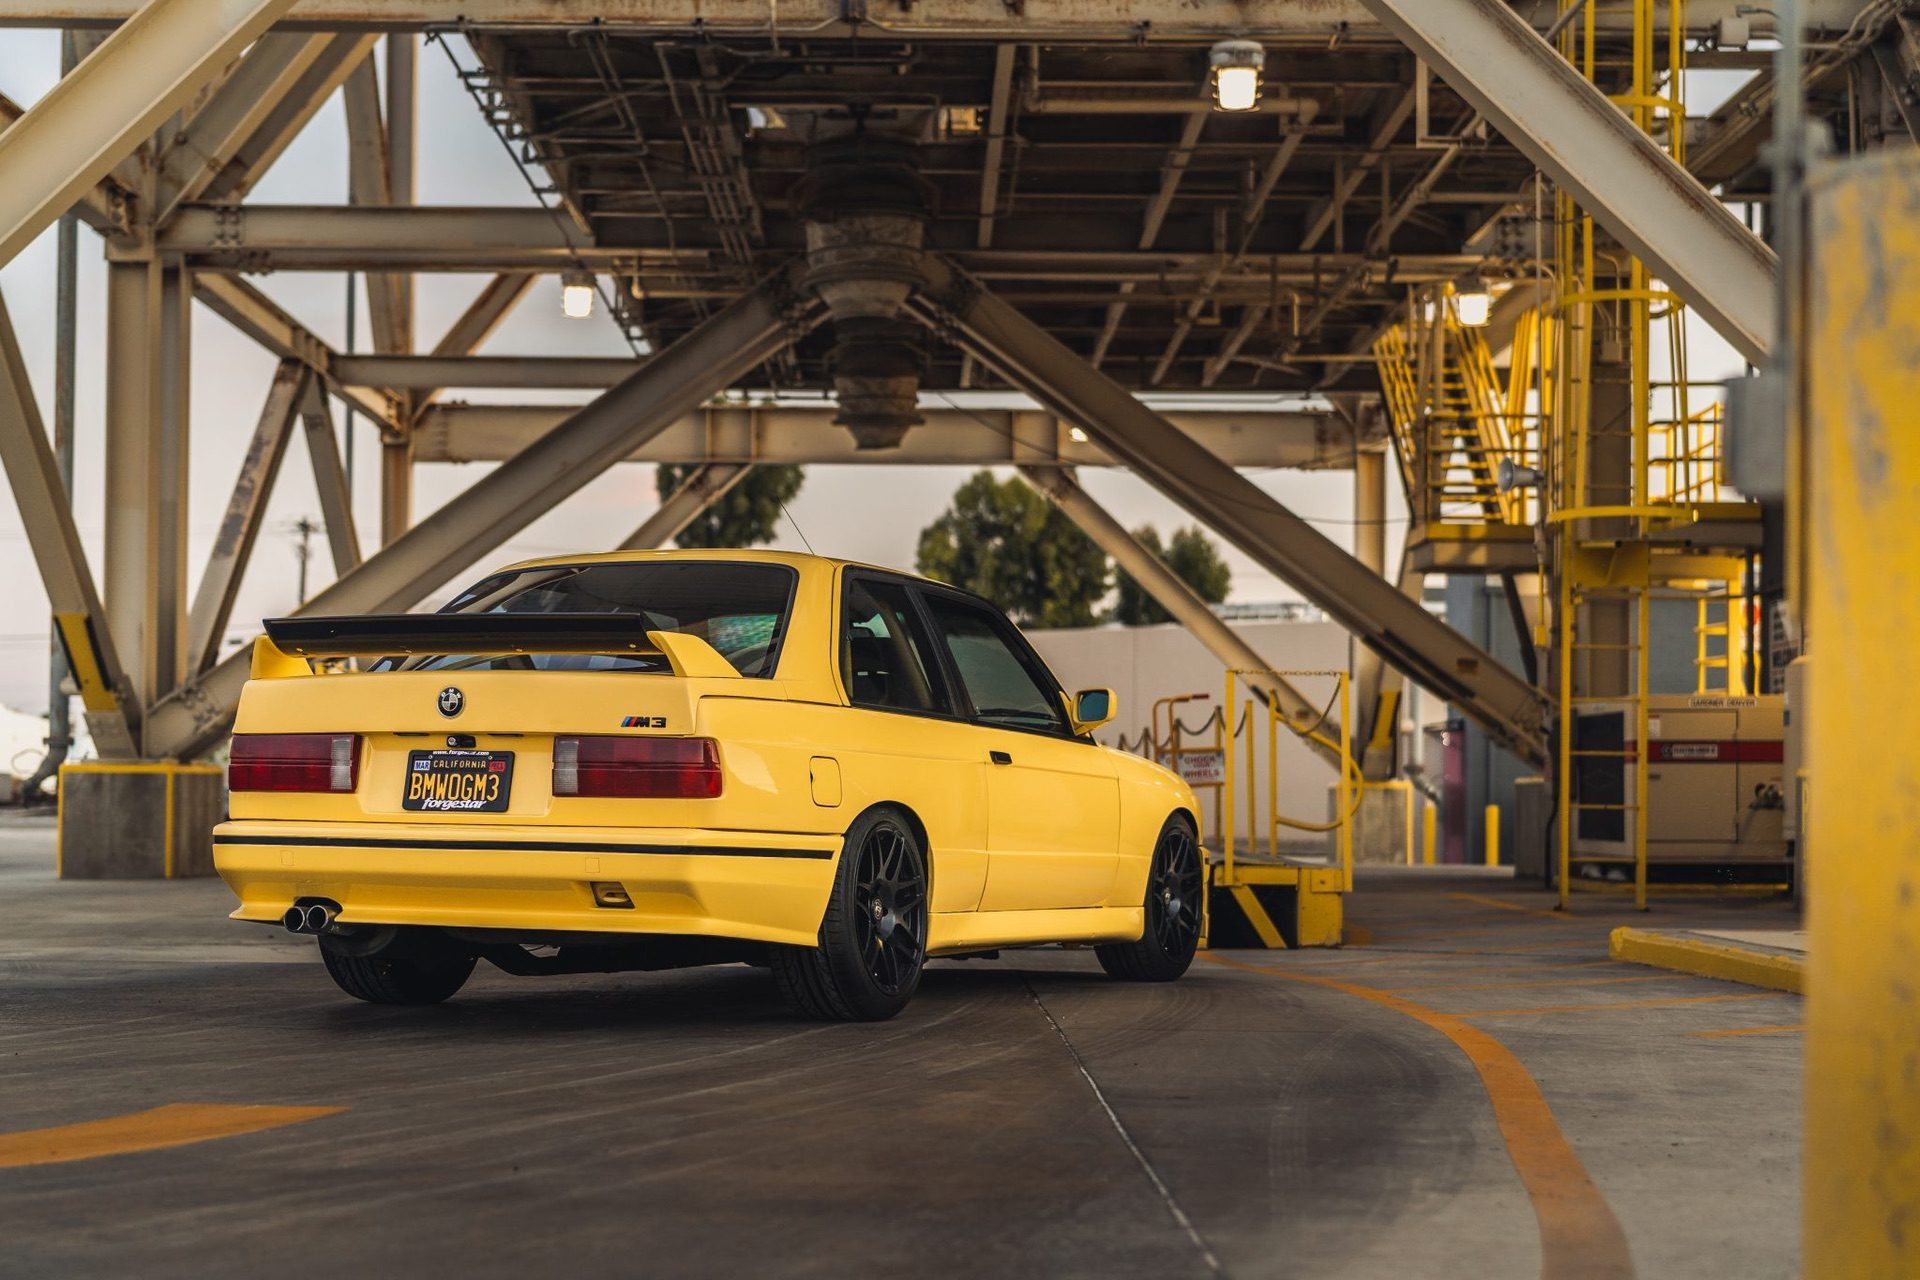 S50-Powered_1989_BMW_M3_0004